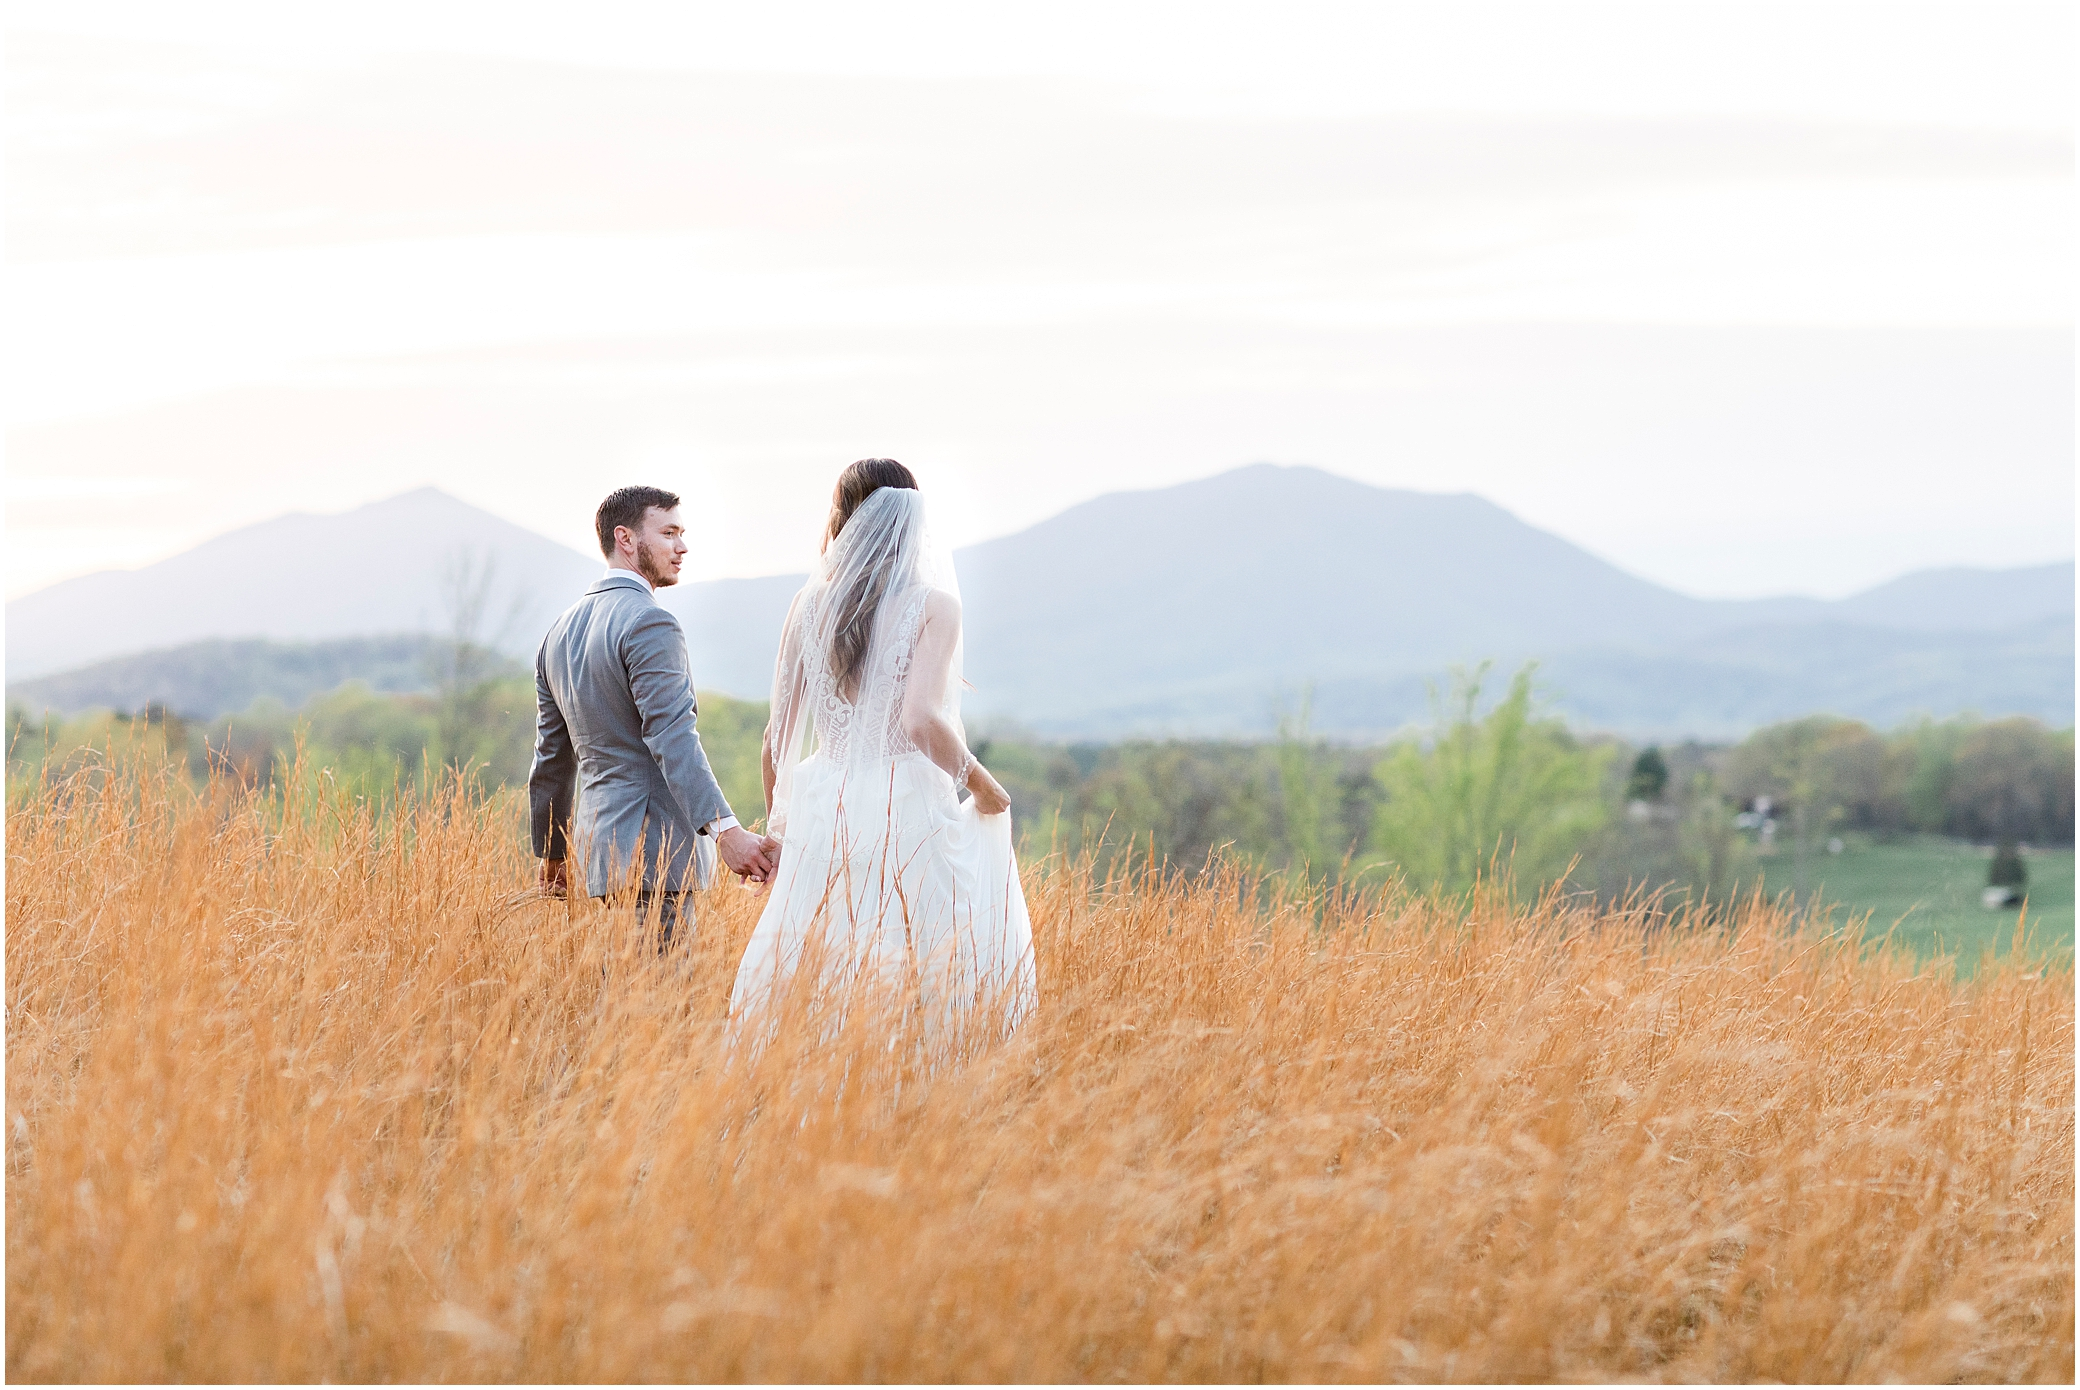 bride and groom in the field with mountain views at sunset at sierra vista wedding